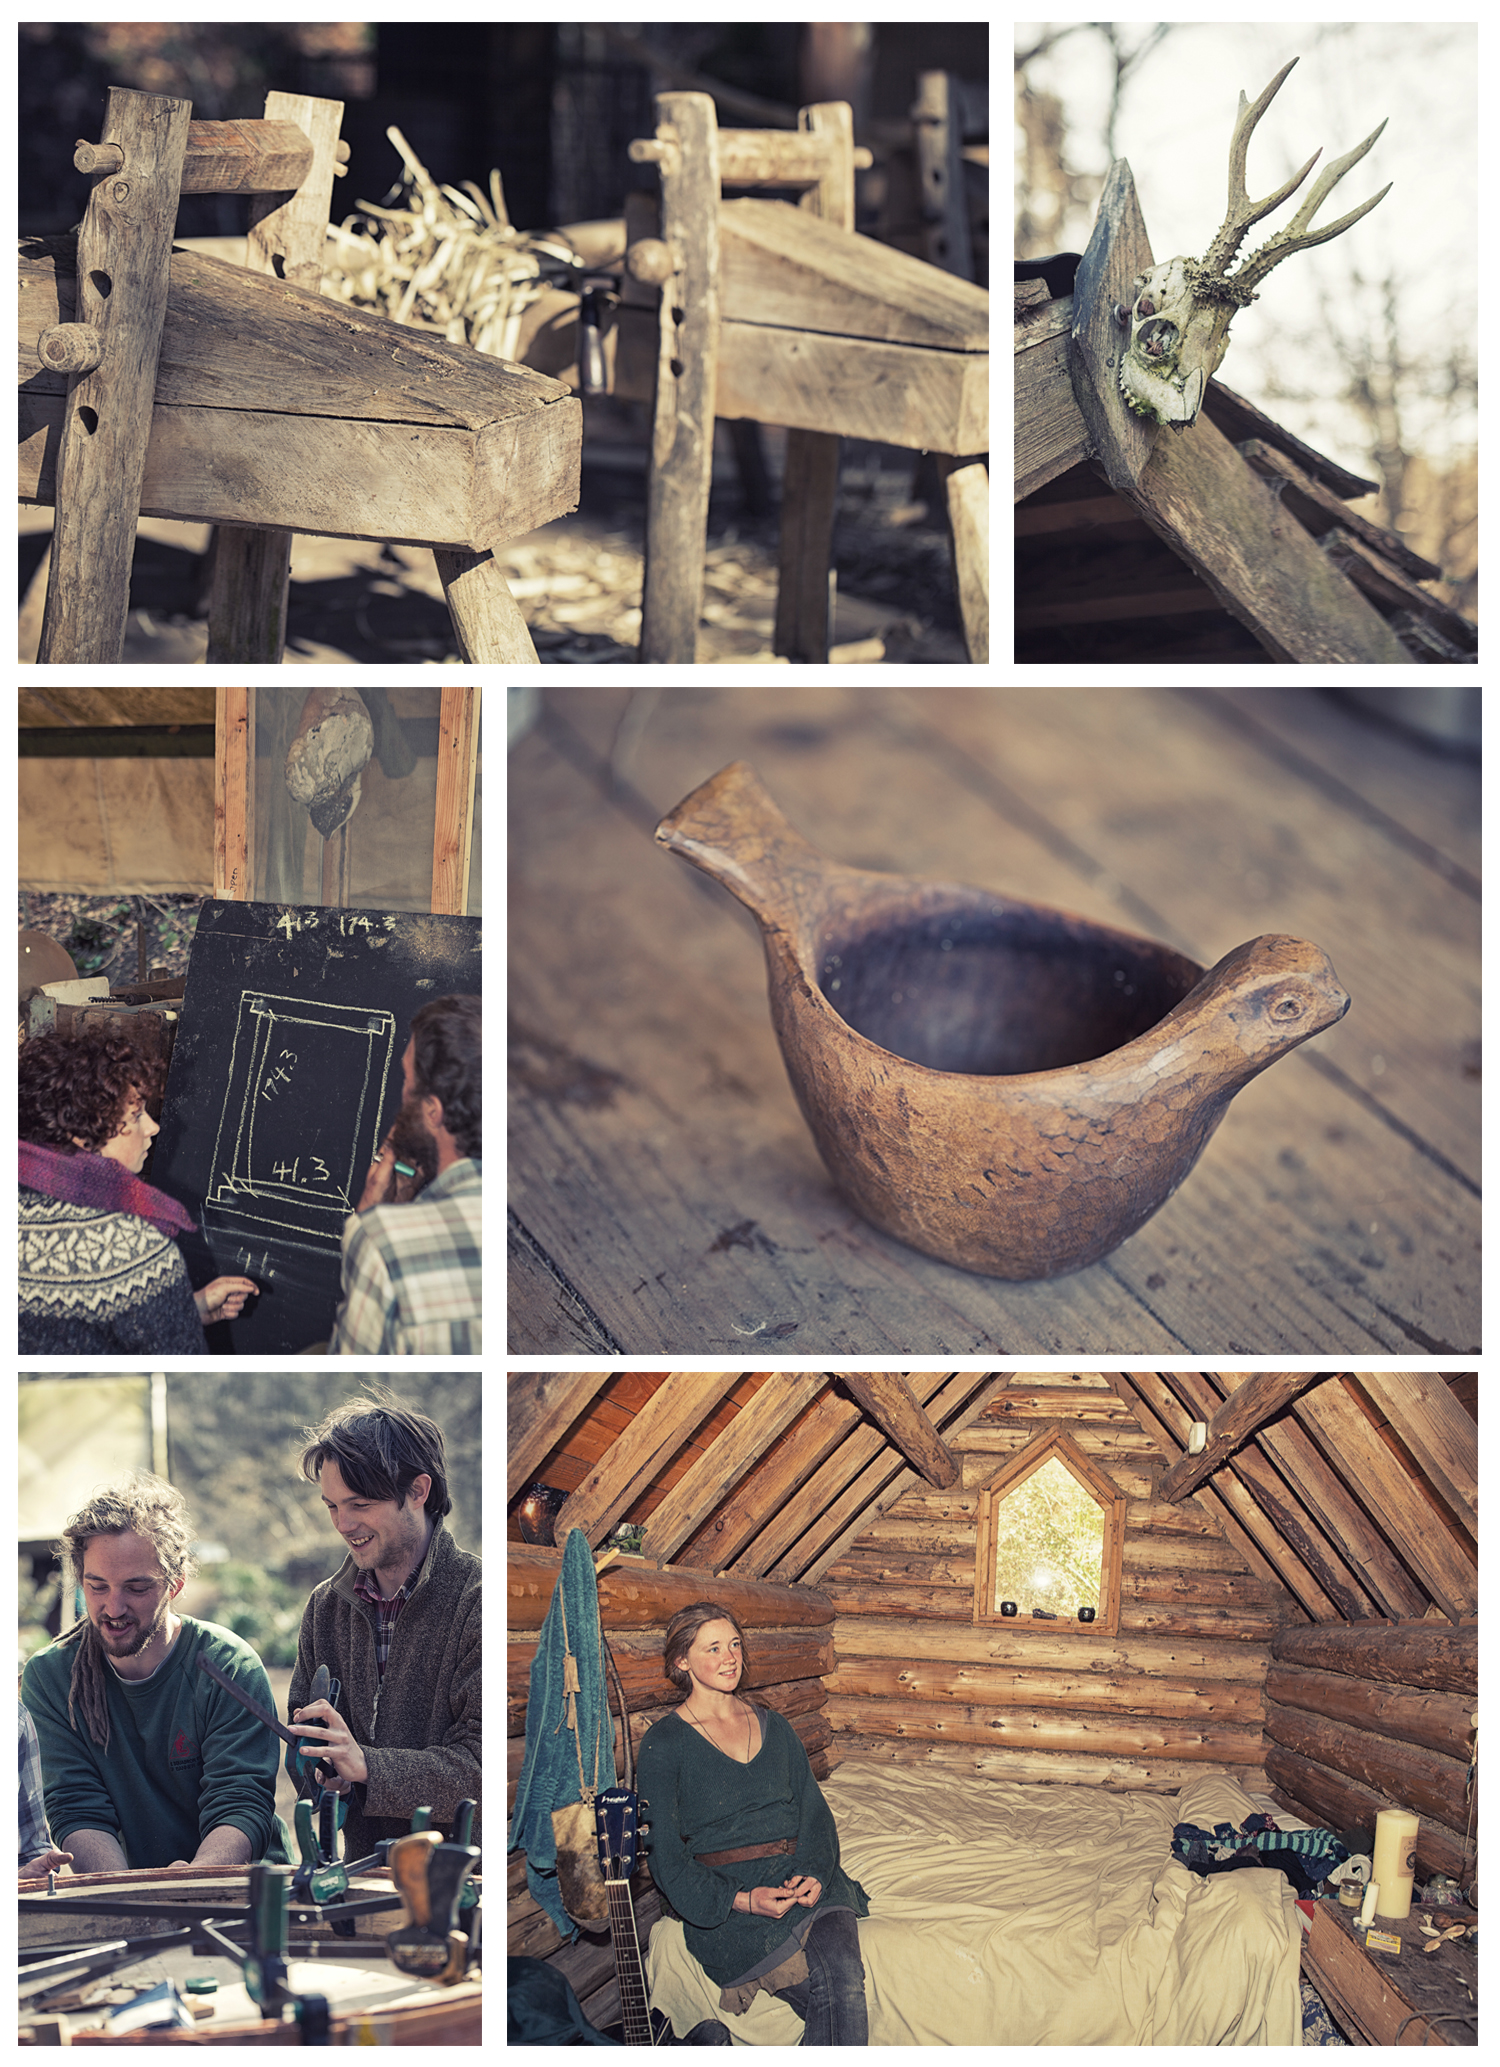 course attendees stay on site at the Cherry Wood project. Shave horses (top)and hand-made wooden bowl